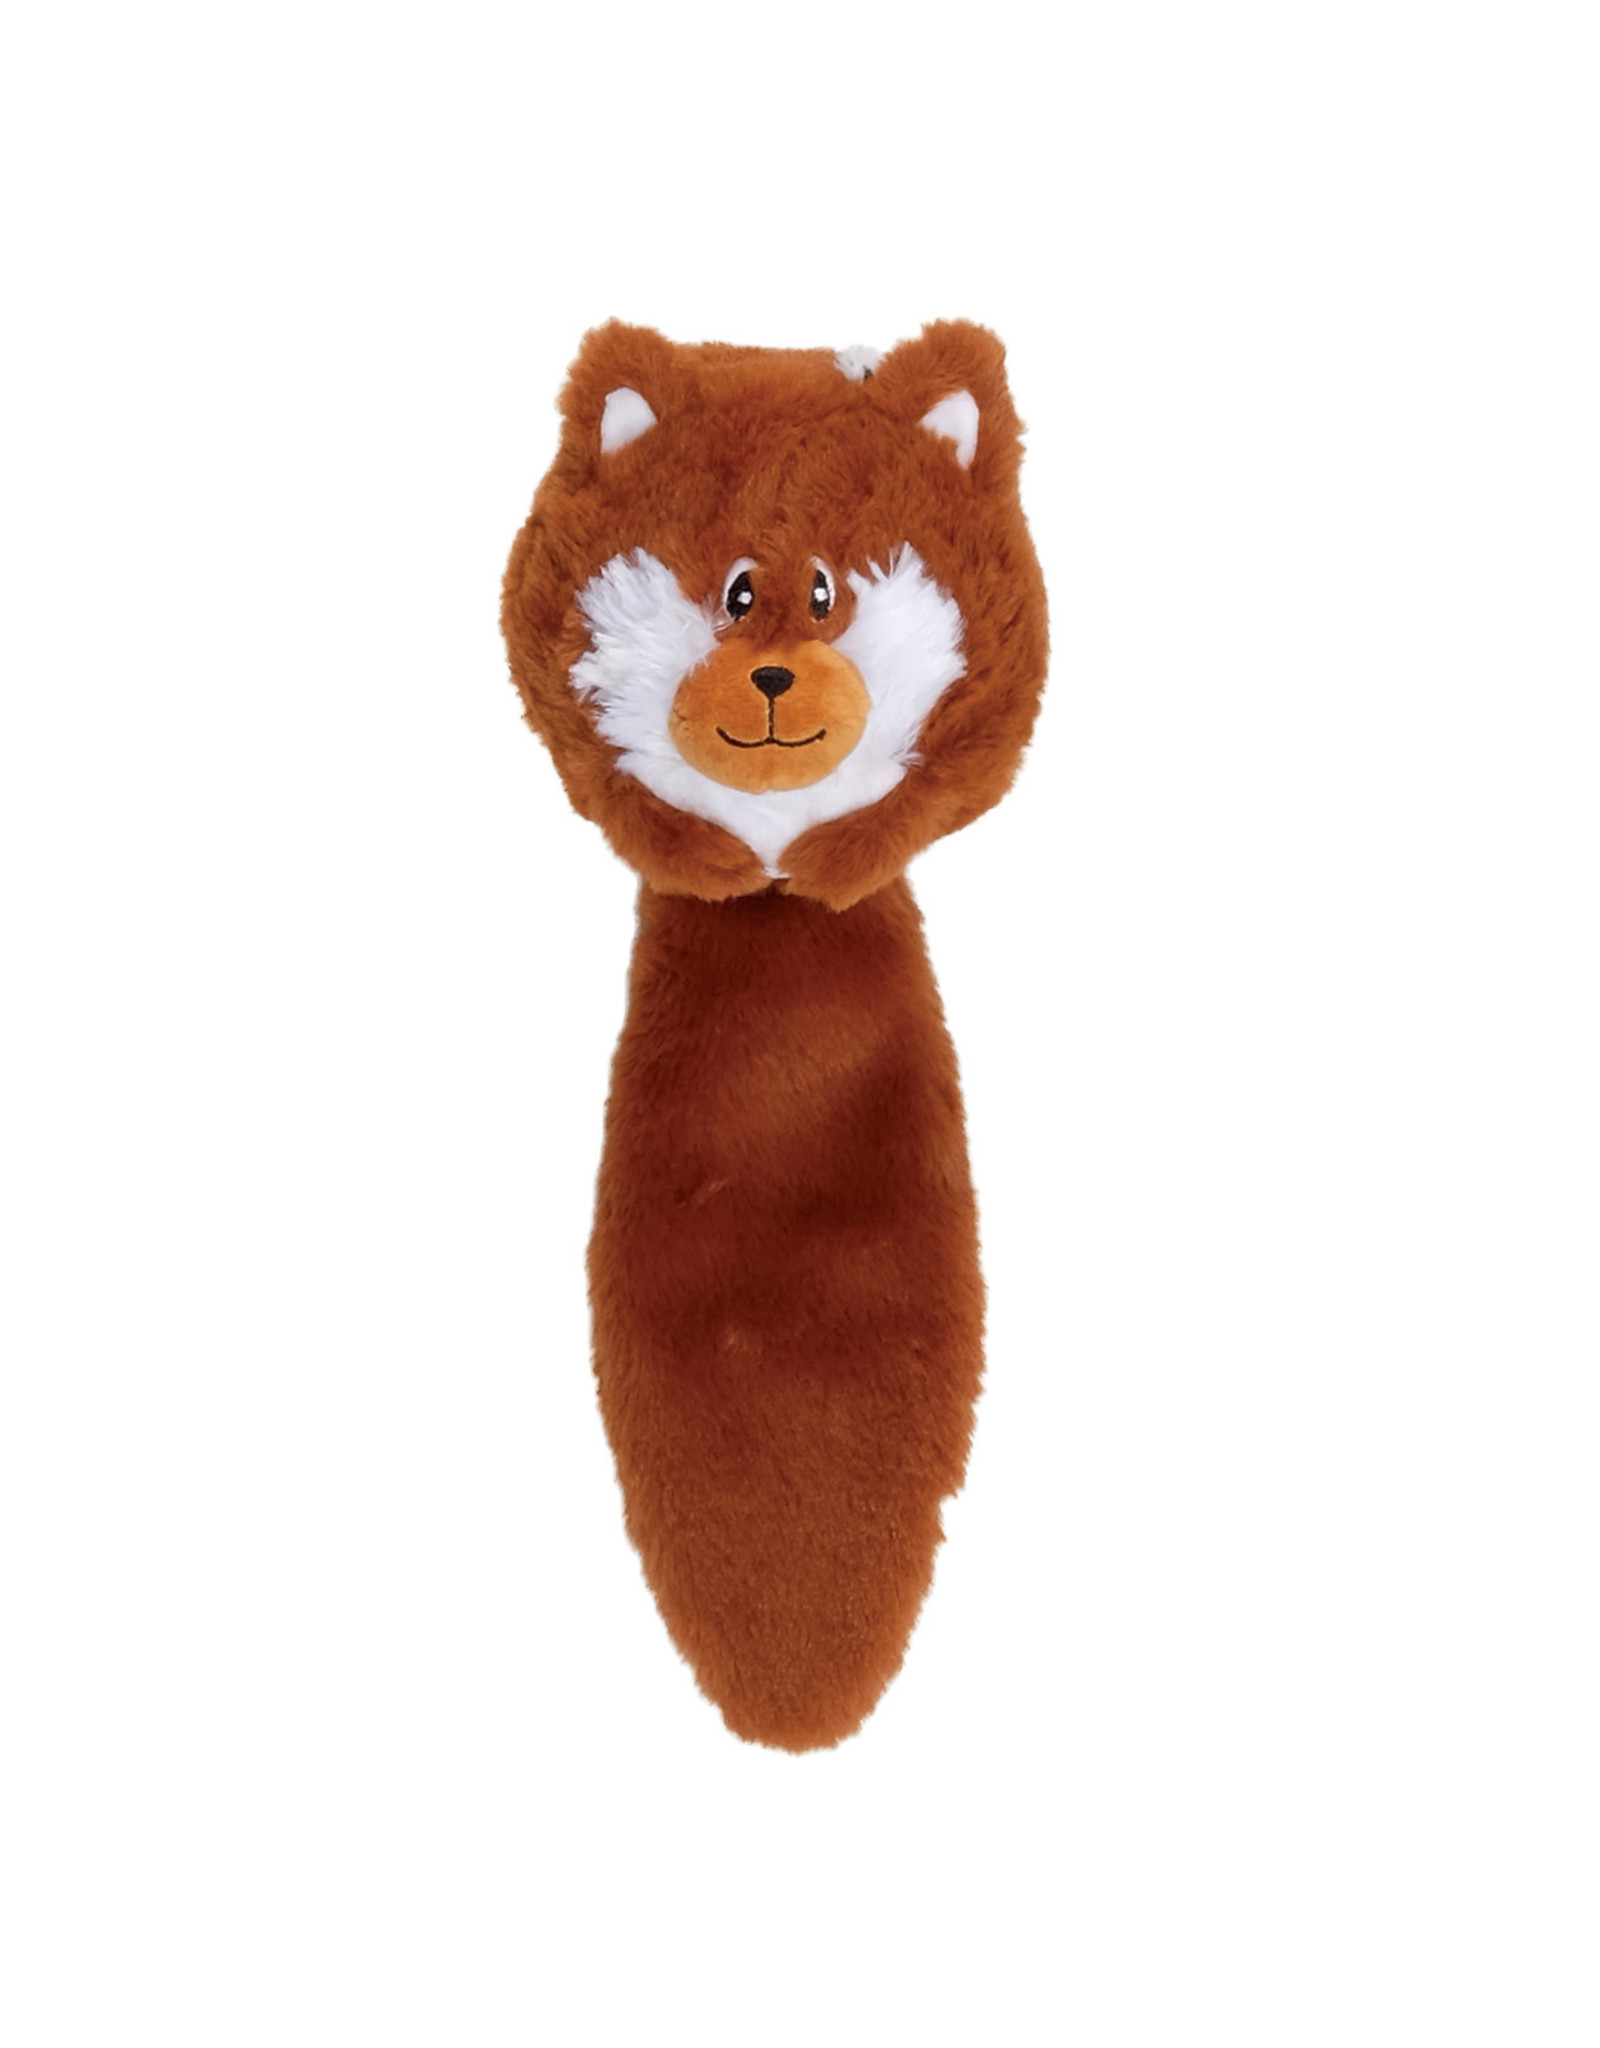 DogIt Dogit Stuffies - Forest Ball Friend - Fox - 32 cm (12.5 in)